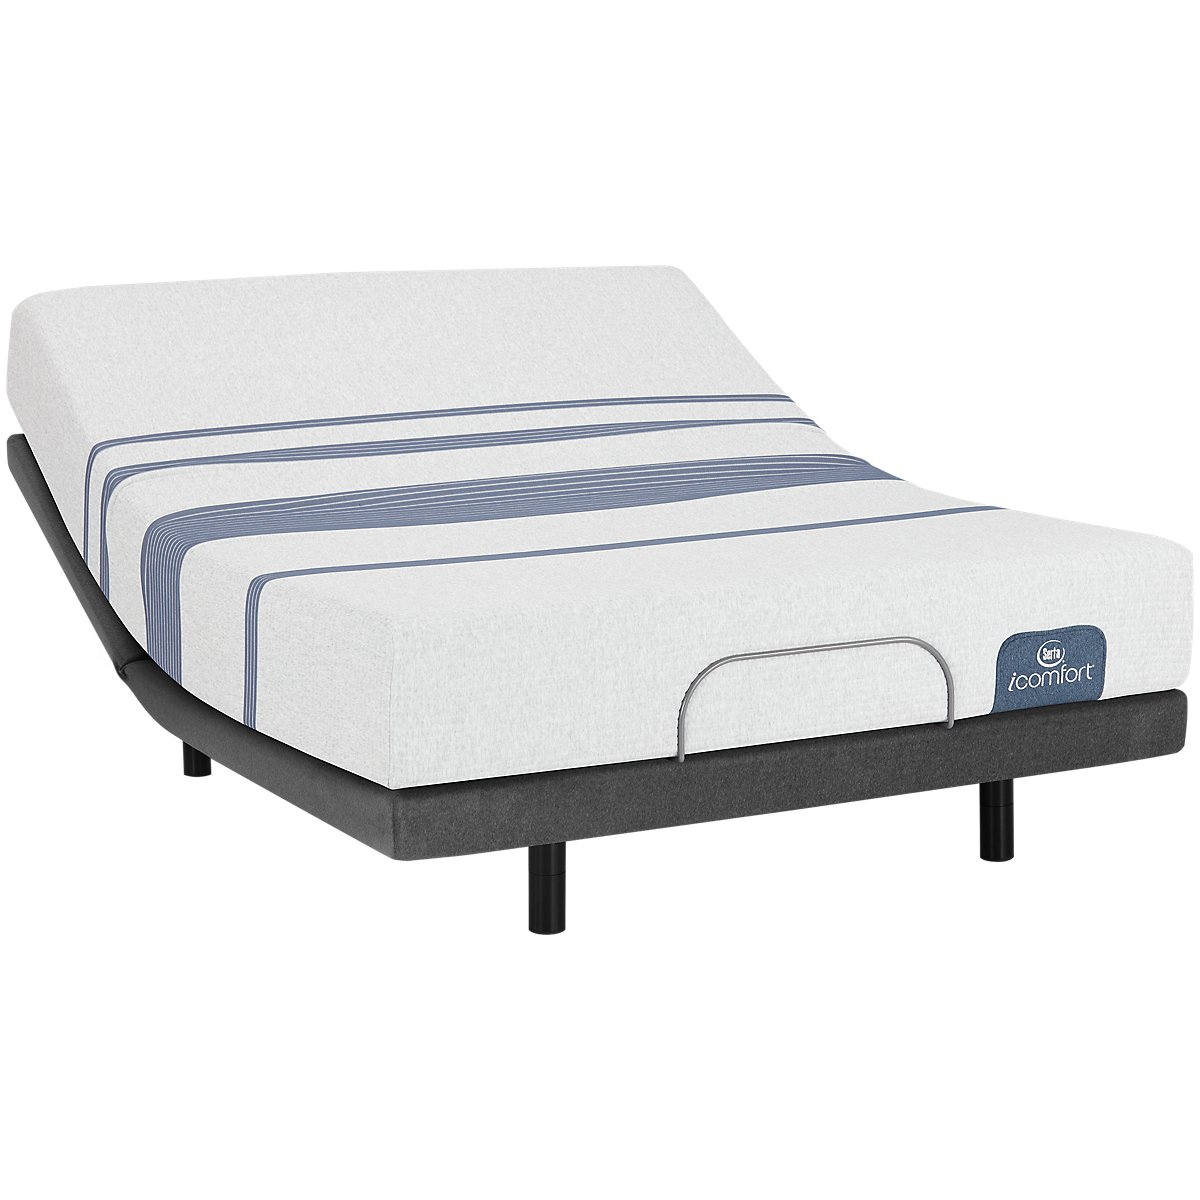 Serta iComfort Blue 100 Firm Elite Adjustable Mattress Set